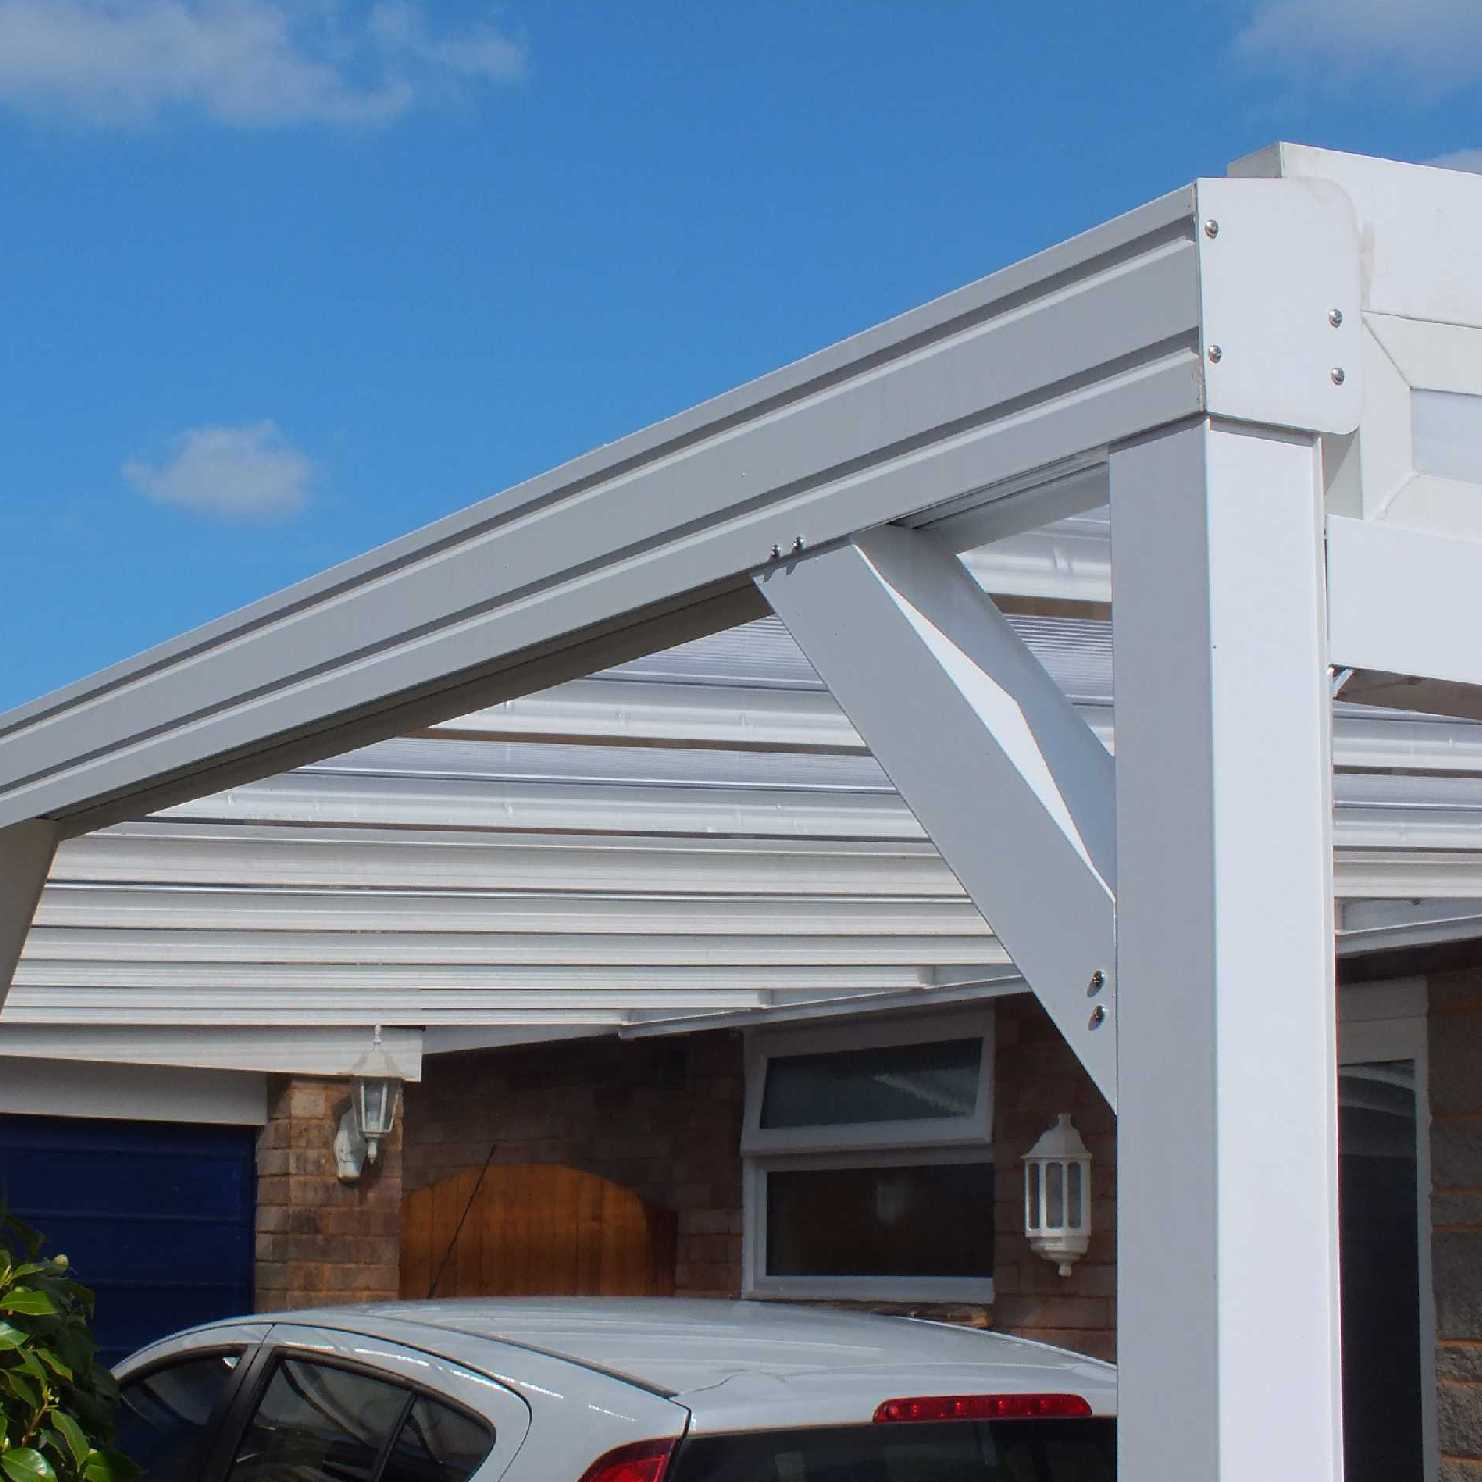 Great deals on Omega Smart Lean-To Canopy with 16mm Polycarbonate Glazing - 2.8m (W) x 3.5m (P), (2) Supporting Posts